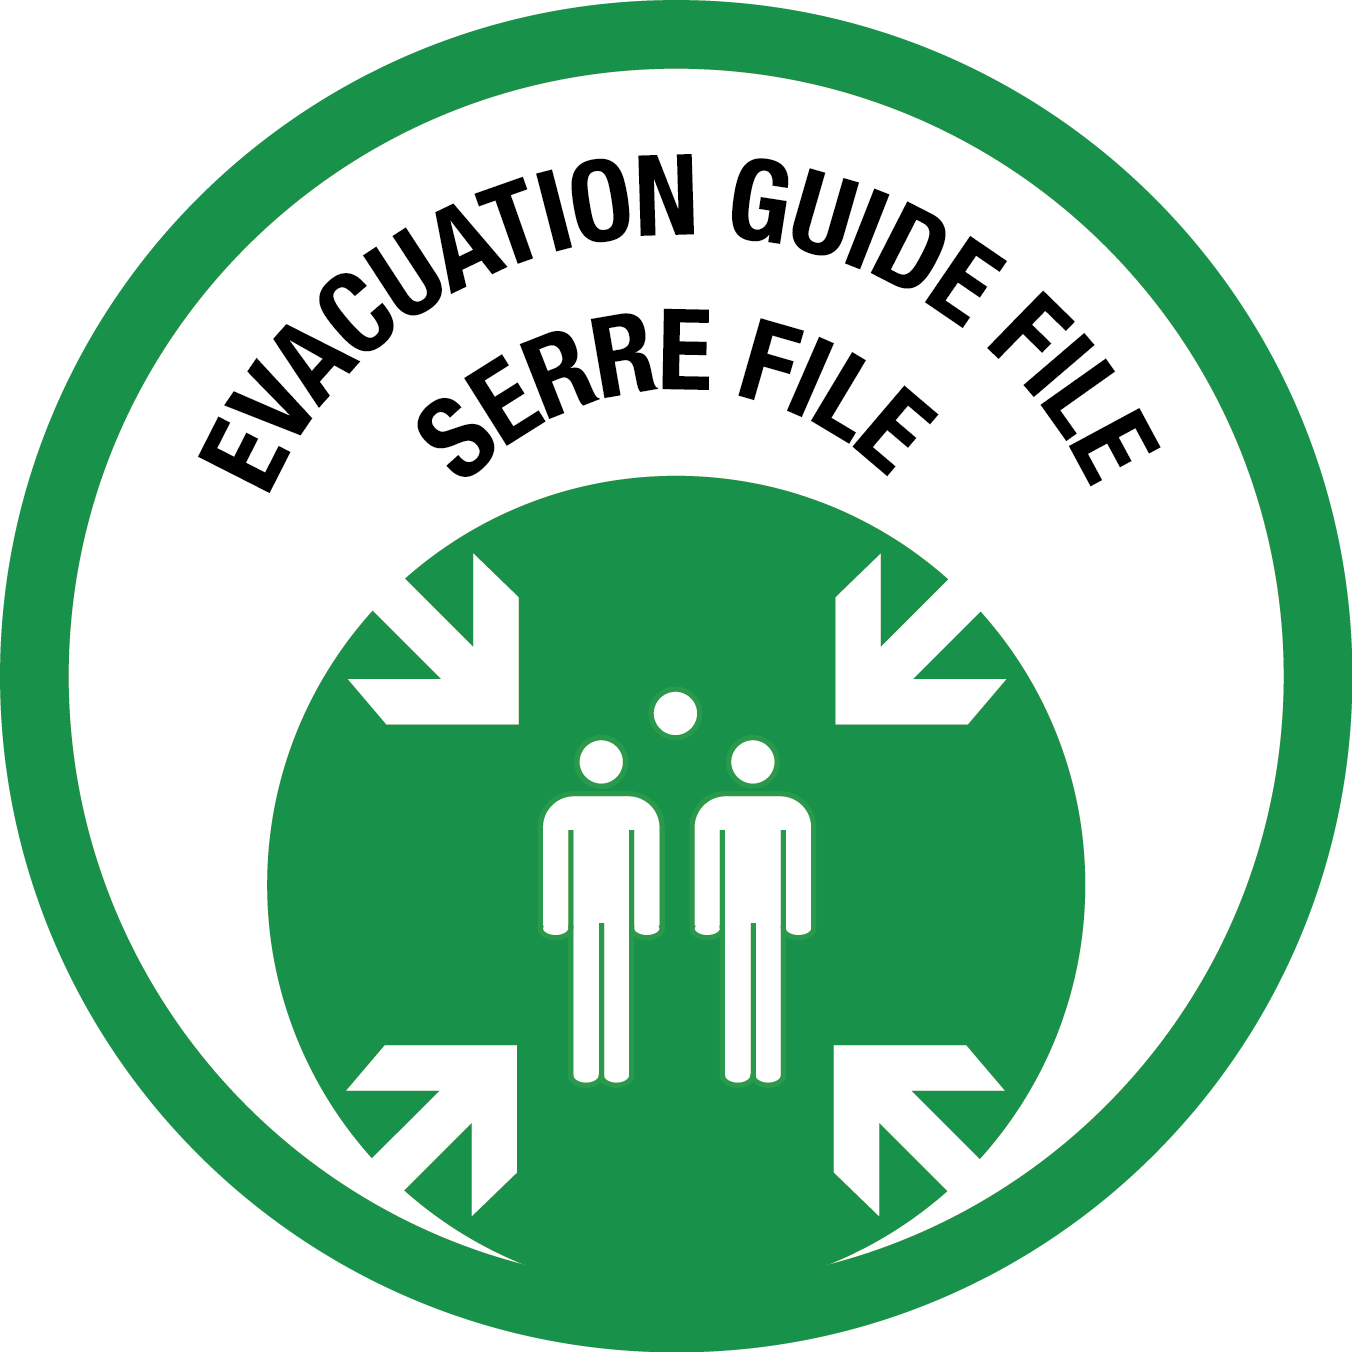 Formation guide file et serre file